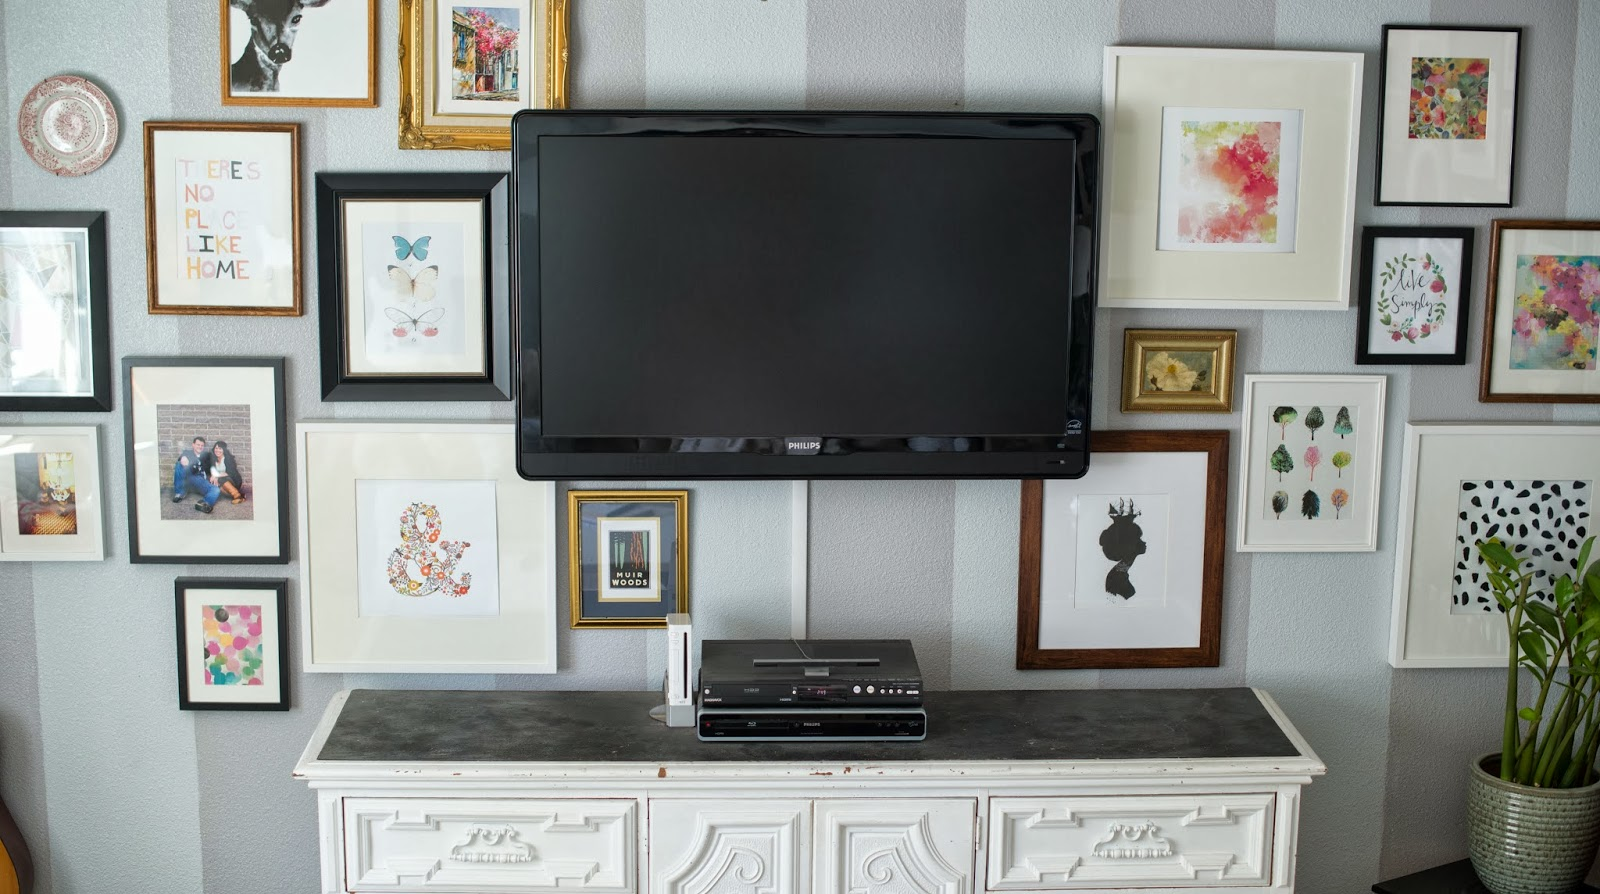 Wall Sconces Near Tv : Domestic Fashionista: Decorating Around the TV and a New Shelf